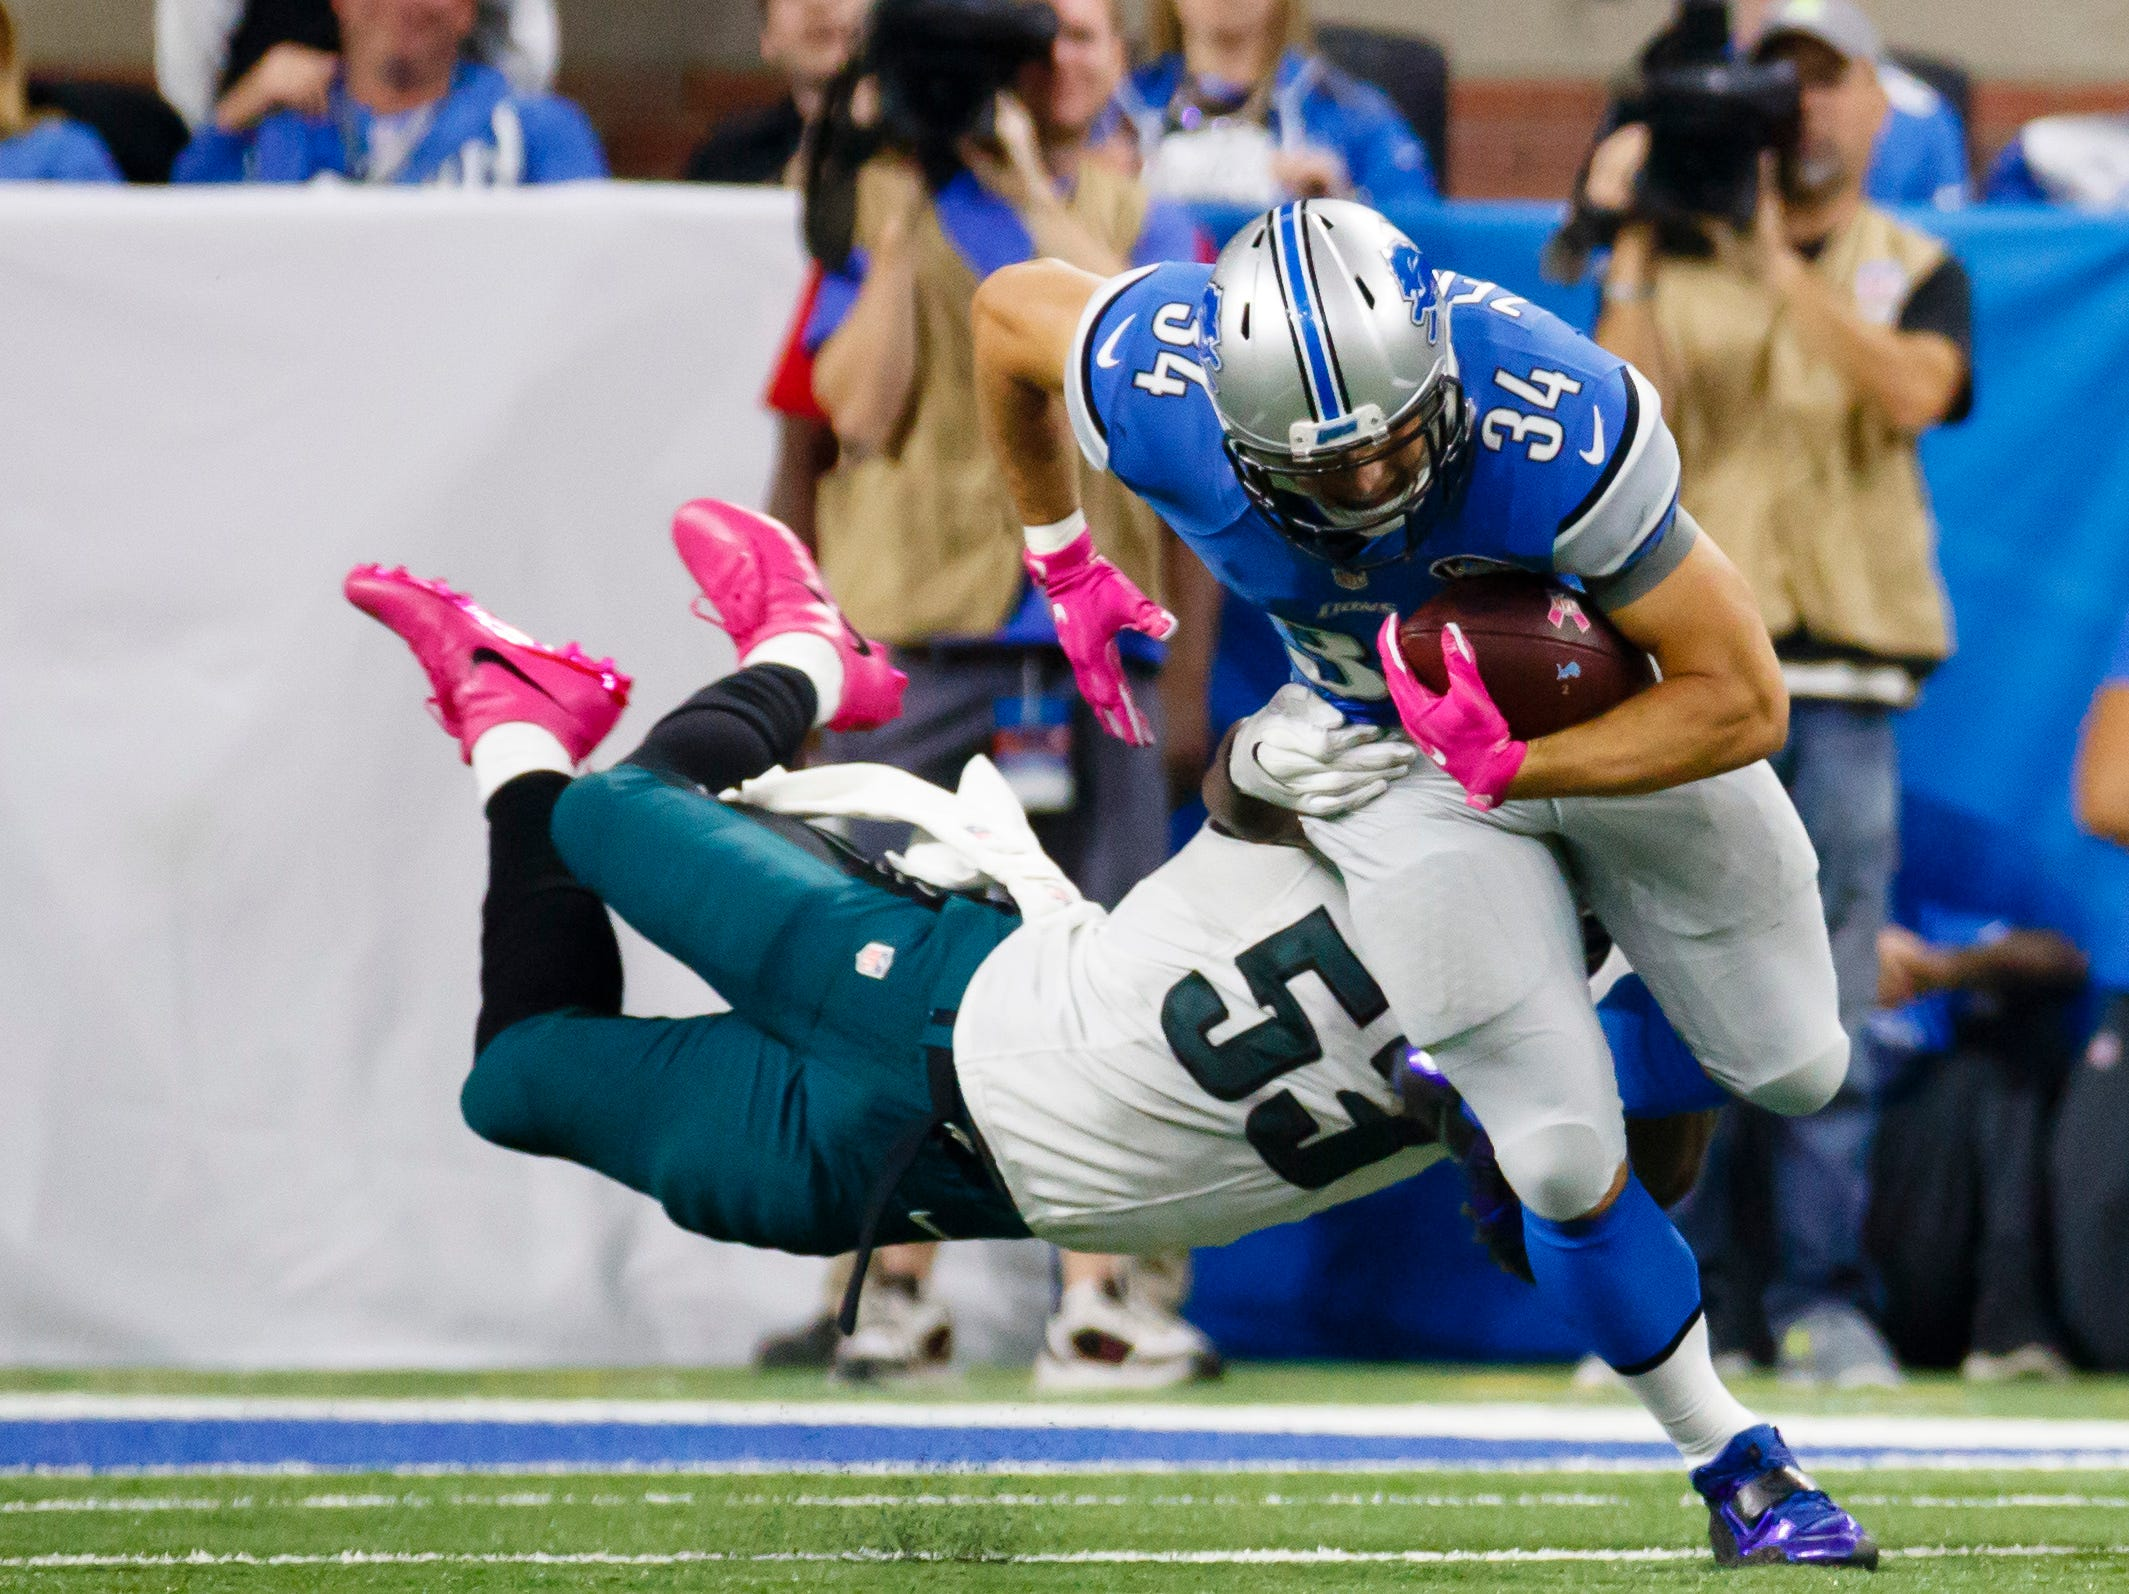 Detroit Lions fullback Zach Zenner (34) breaks a tackle by Philadelphia Eagles outside linebacker Nigel Bradham (53) during an NFL football game at Ford Field in Detroit, Sunday, Oct. 9, 2016. (AP Photo/Rick Osentoski)